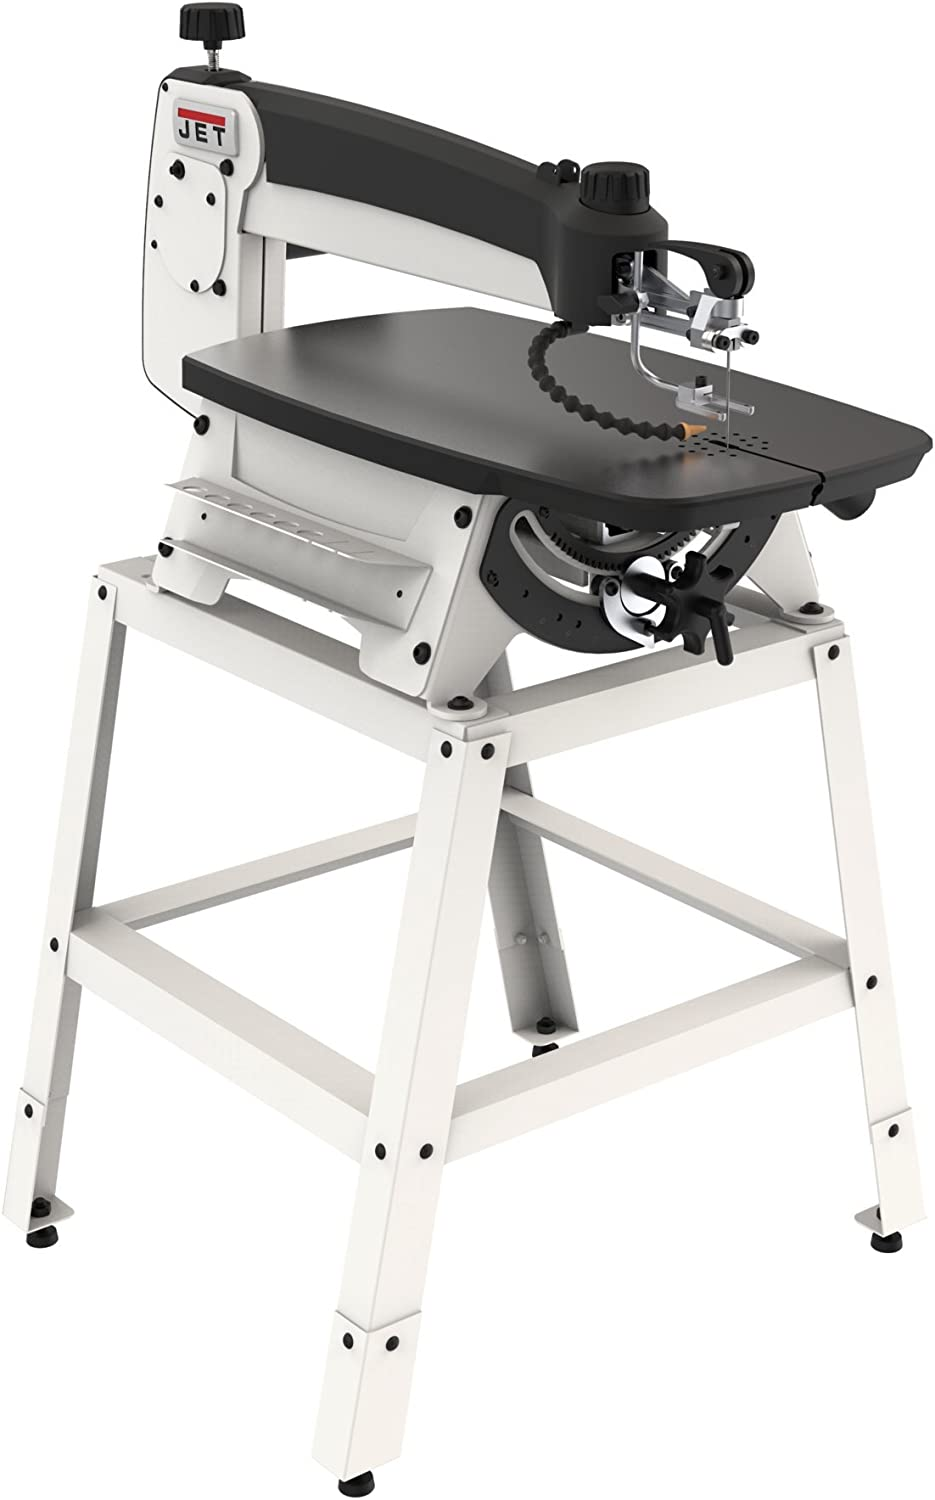 Jet 727200K Scroll Saw – Best Professional Scroll Saw